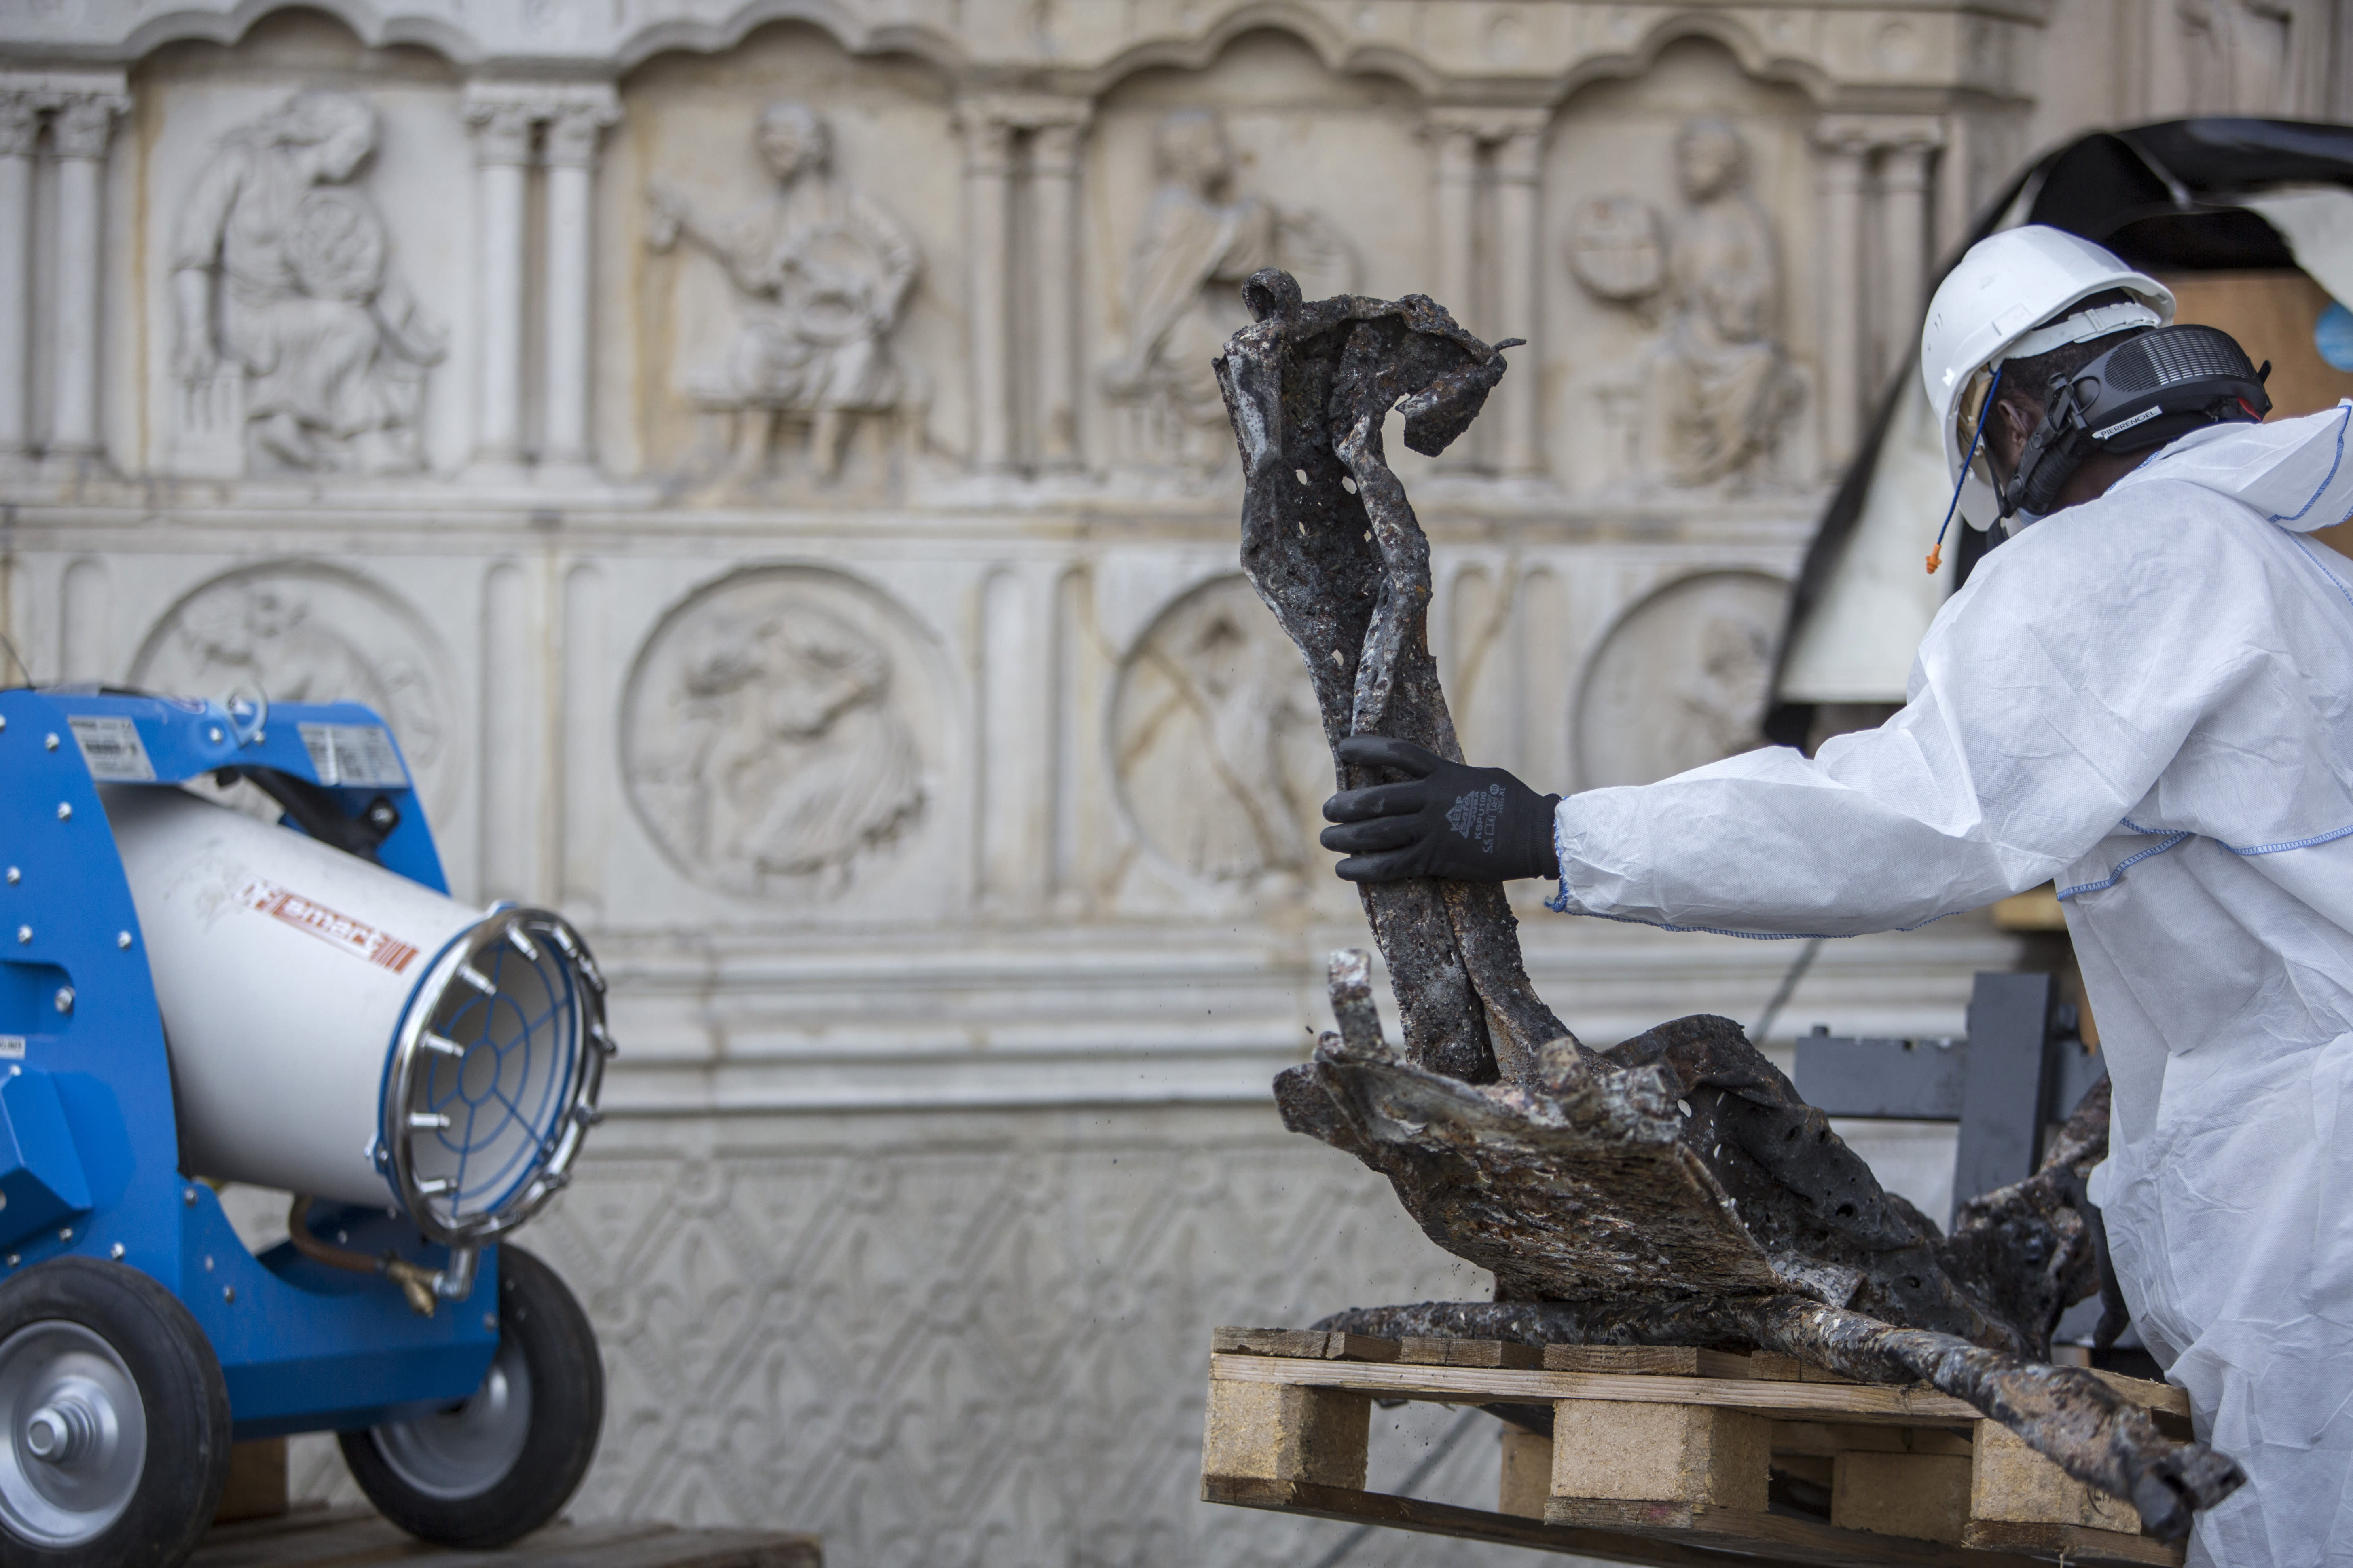 A worker cleans debris, during preliminary work to repair the fire damage at the Notre-Dame de Paris Cathedral, in Paris, France, Wednesday, July 24, 2019. (AP Photo/Rafael Yaghobzadeh, Pool)